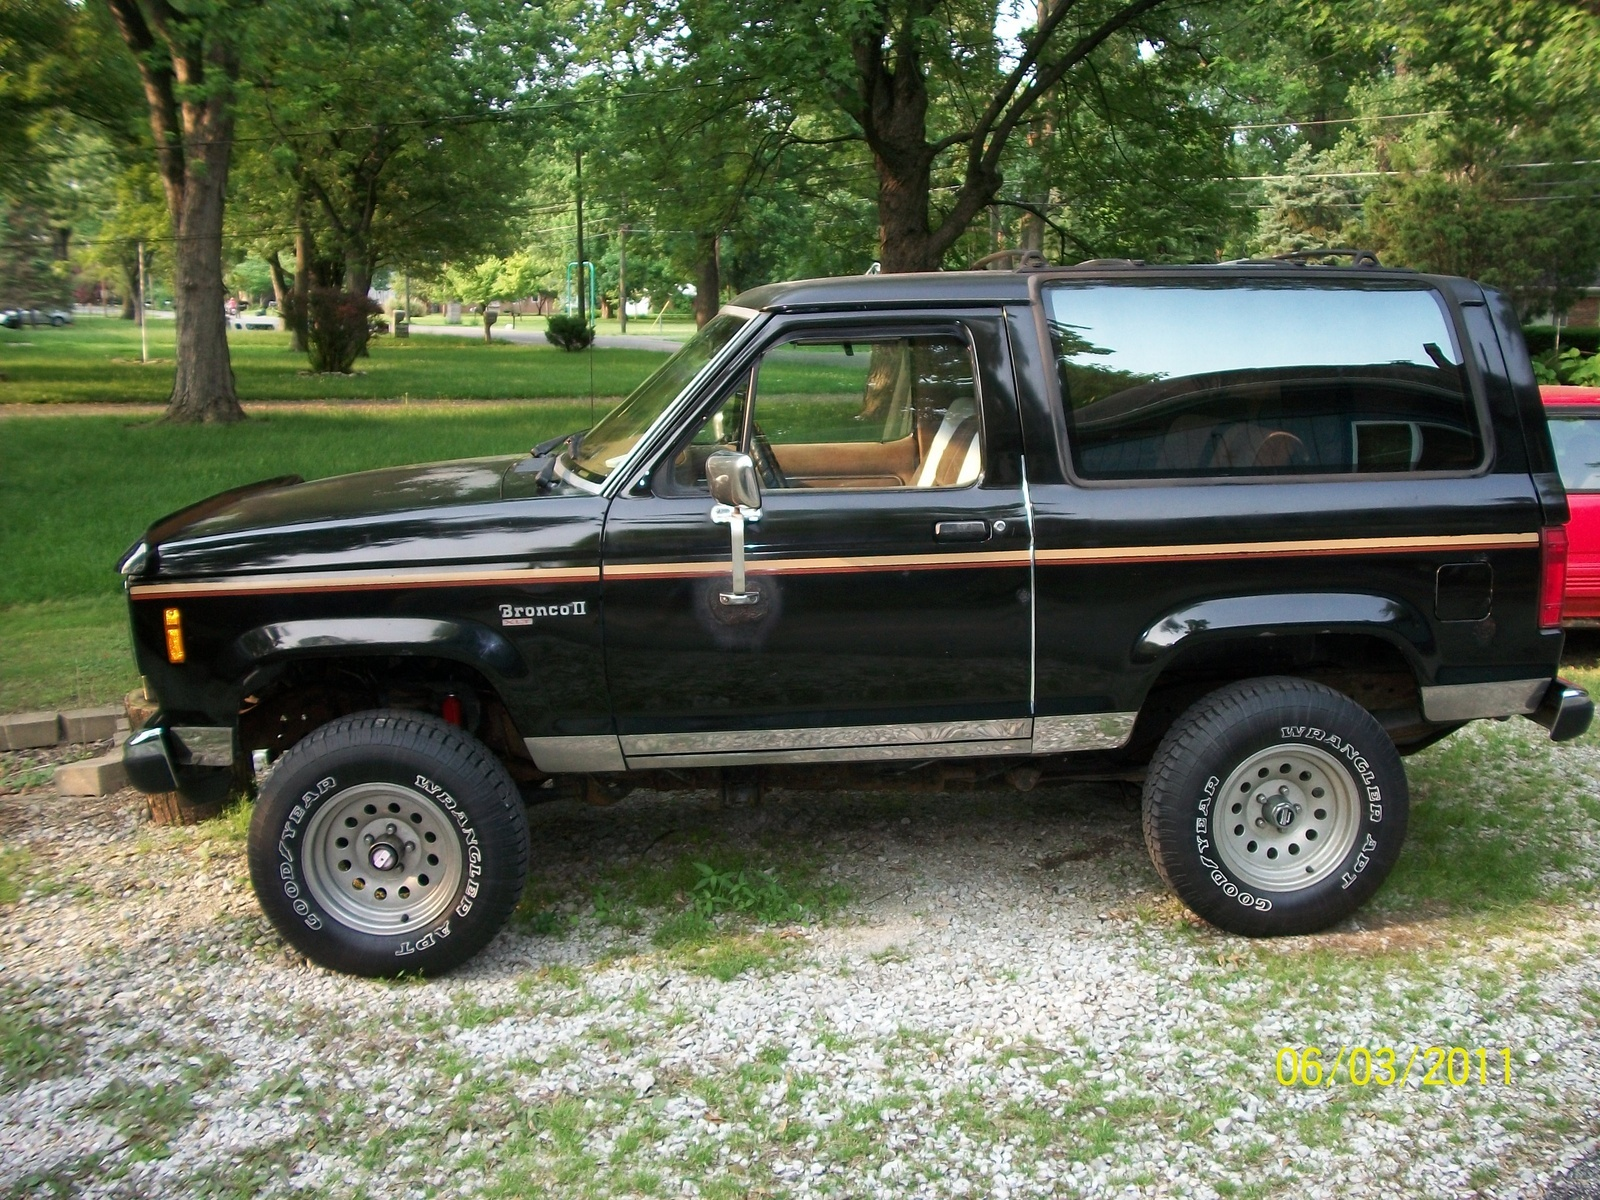 Ford Bronco Ii Questions I Bought New Window Seals For